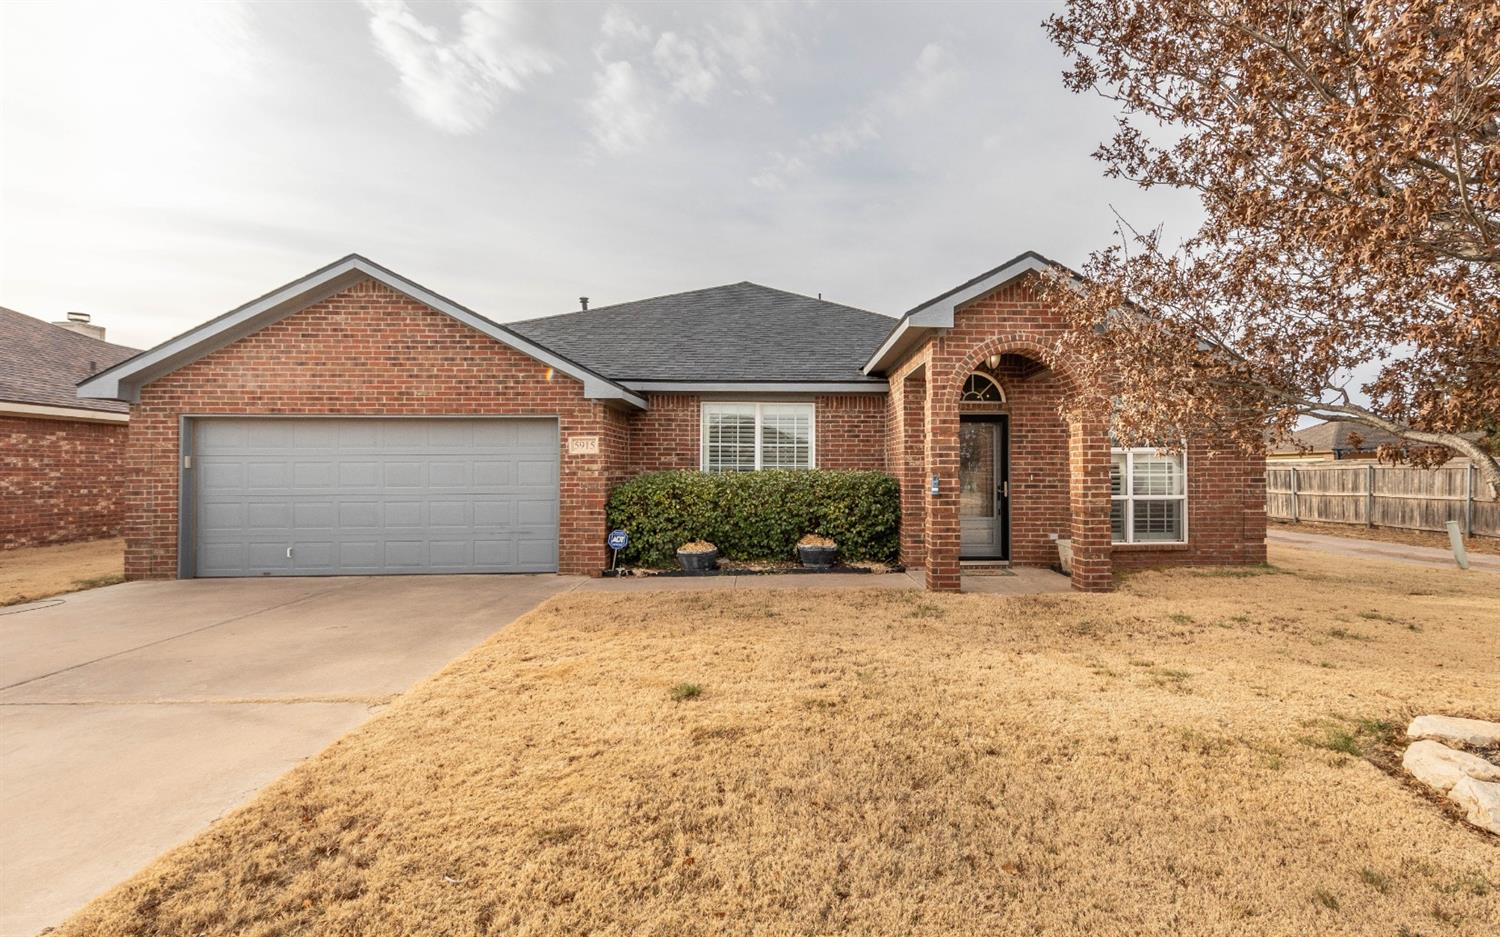 Move right in to this fabulous 4 bedroom, 3 bath home in Cooper LISD. Two living areas & large open-style kitchen with center island is an entertainer's dream. Large mater suite w/ special ceiling & inviting master bath! This home is wired for surround sound, covered patio, privacy fence. Don't miss this warm and inviting home!